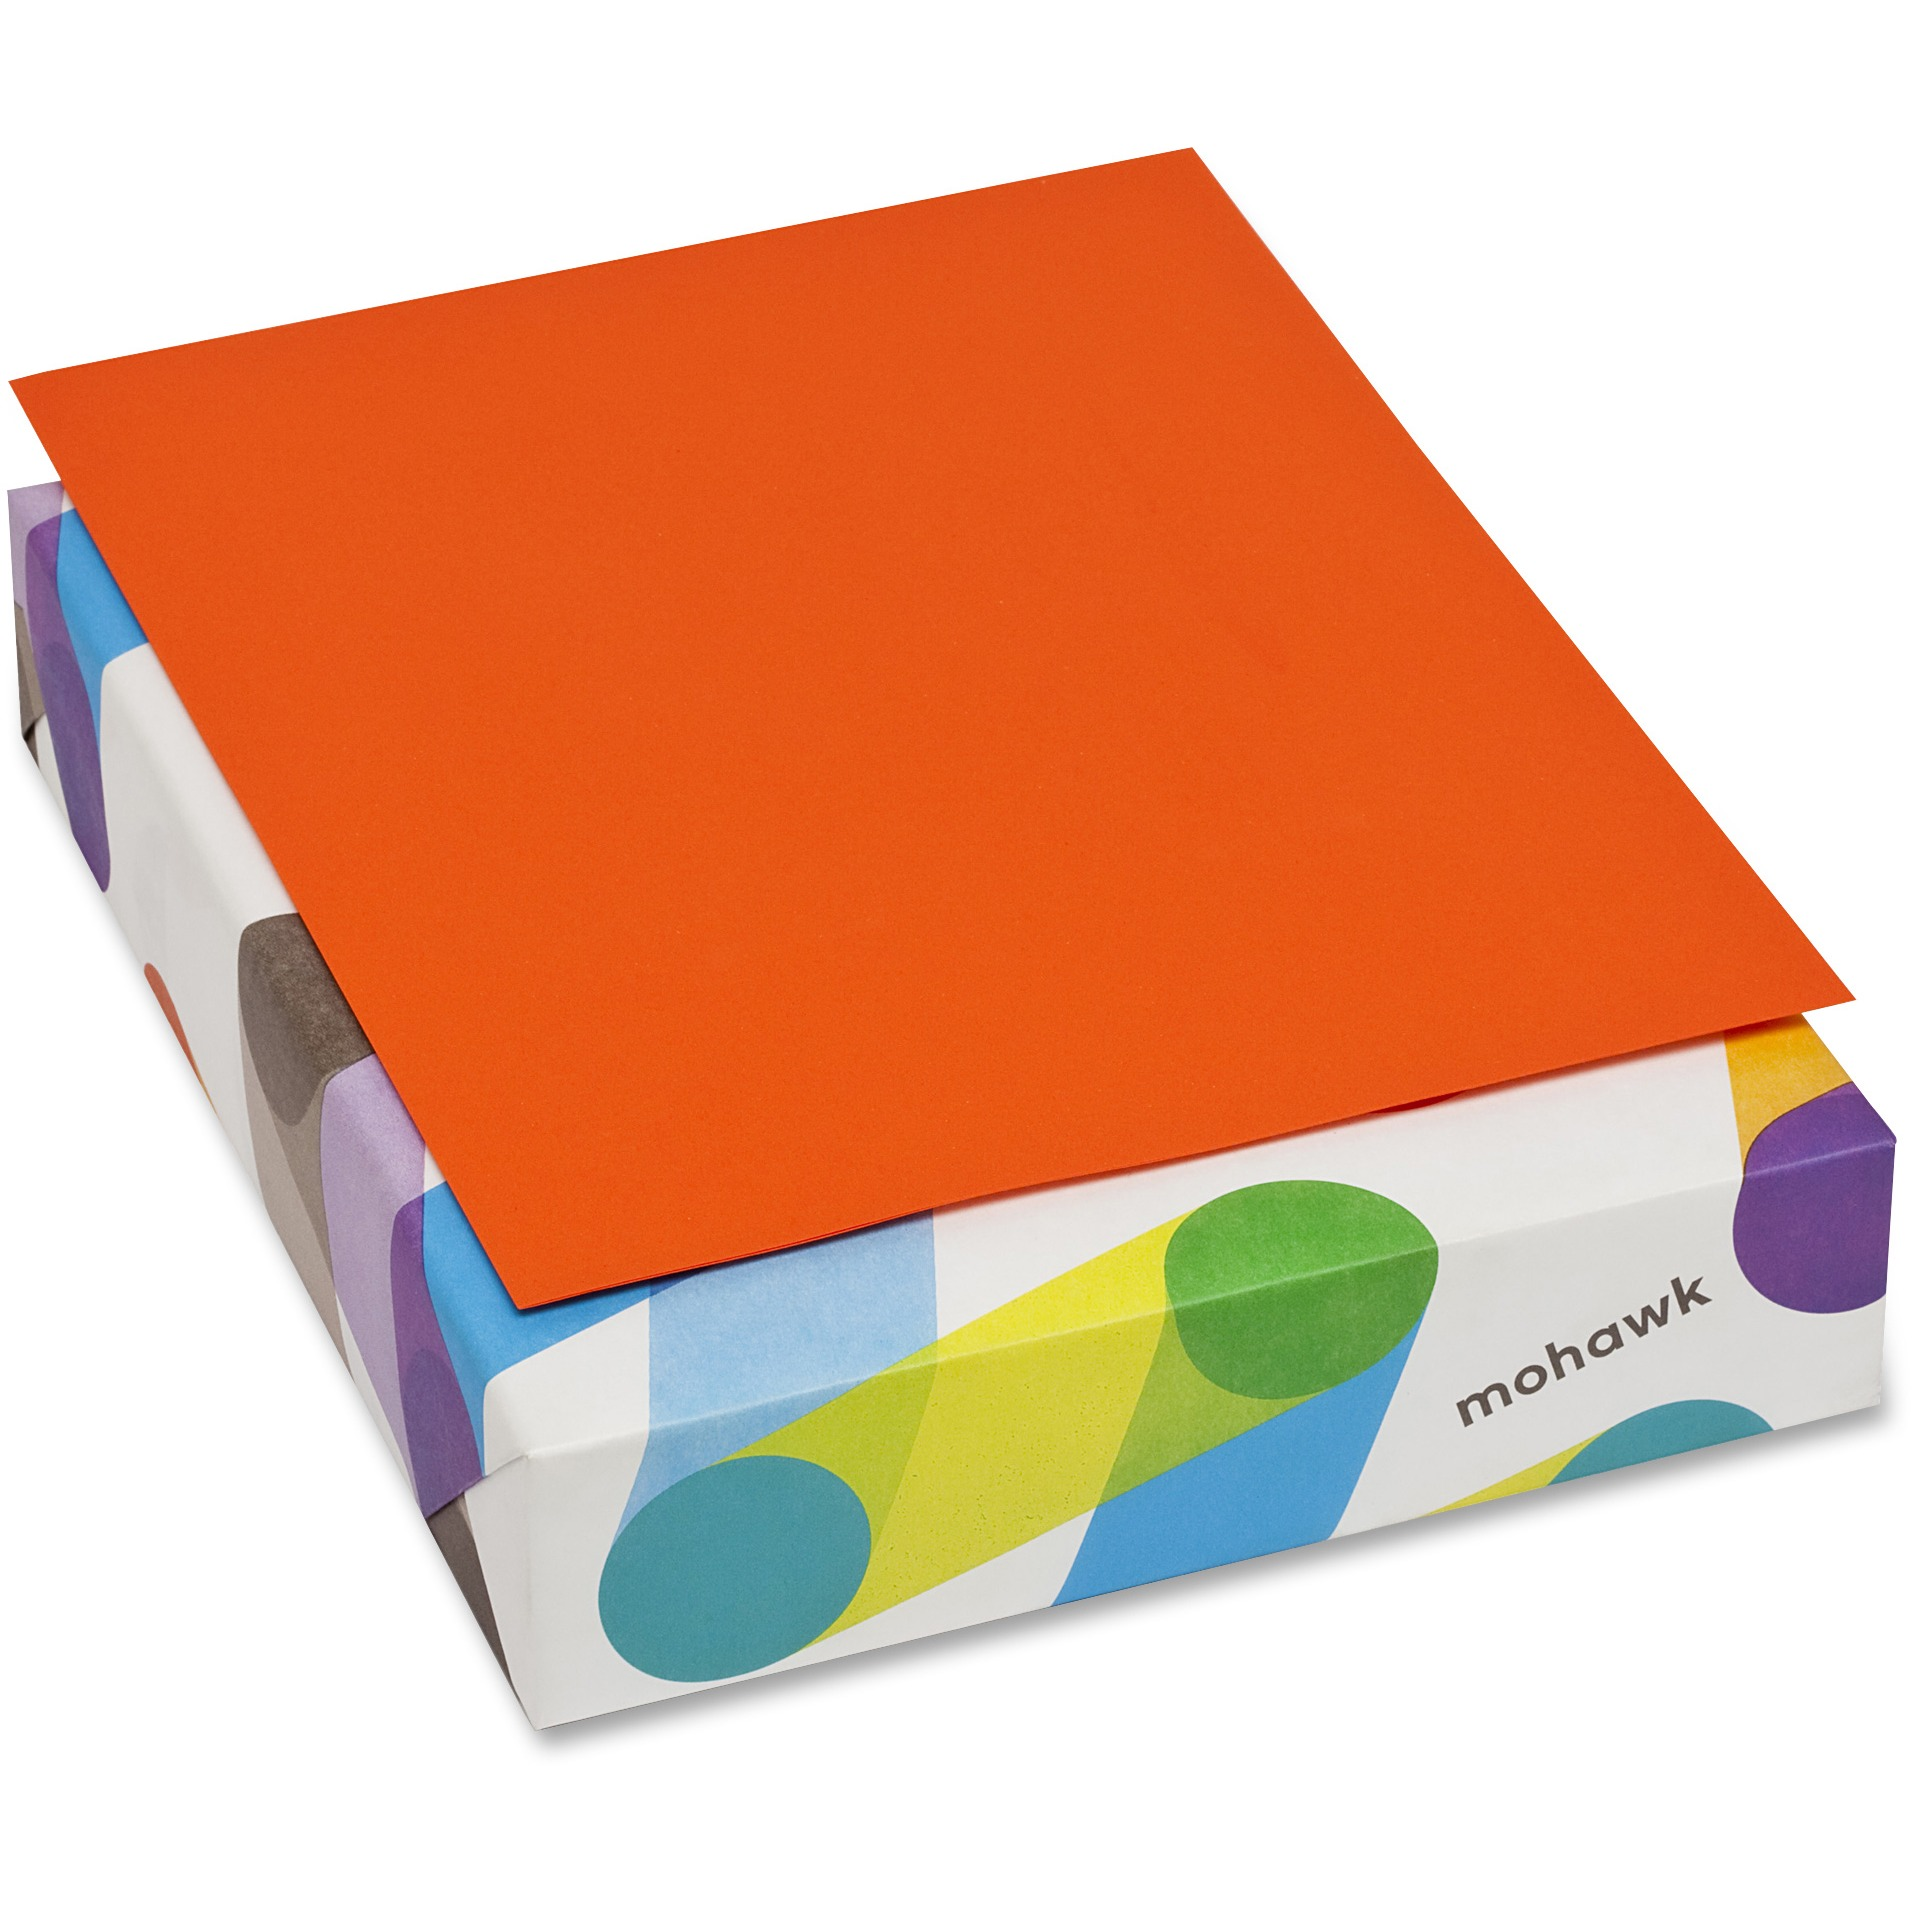 Mohawk BriteHue Laser, Inkjet Print Colored Paper, Orange, 500 / Ream (Quantity)